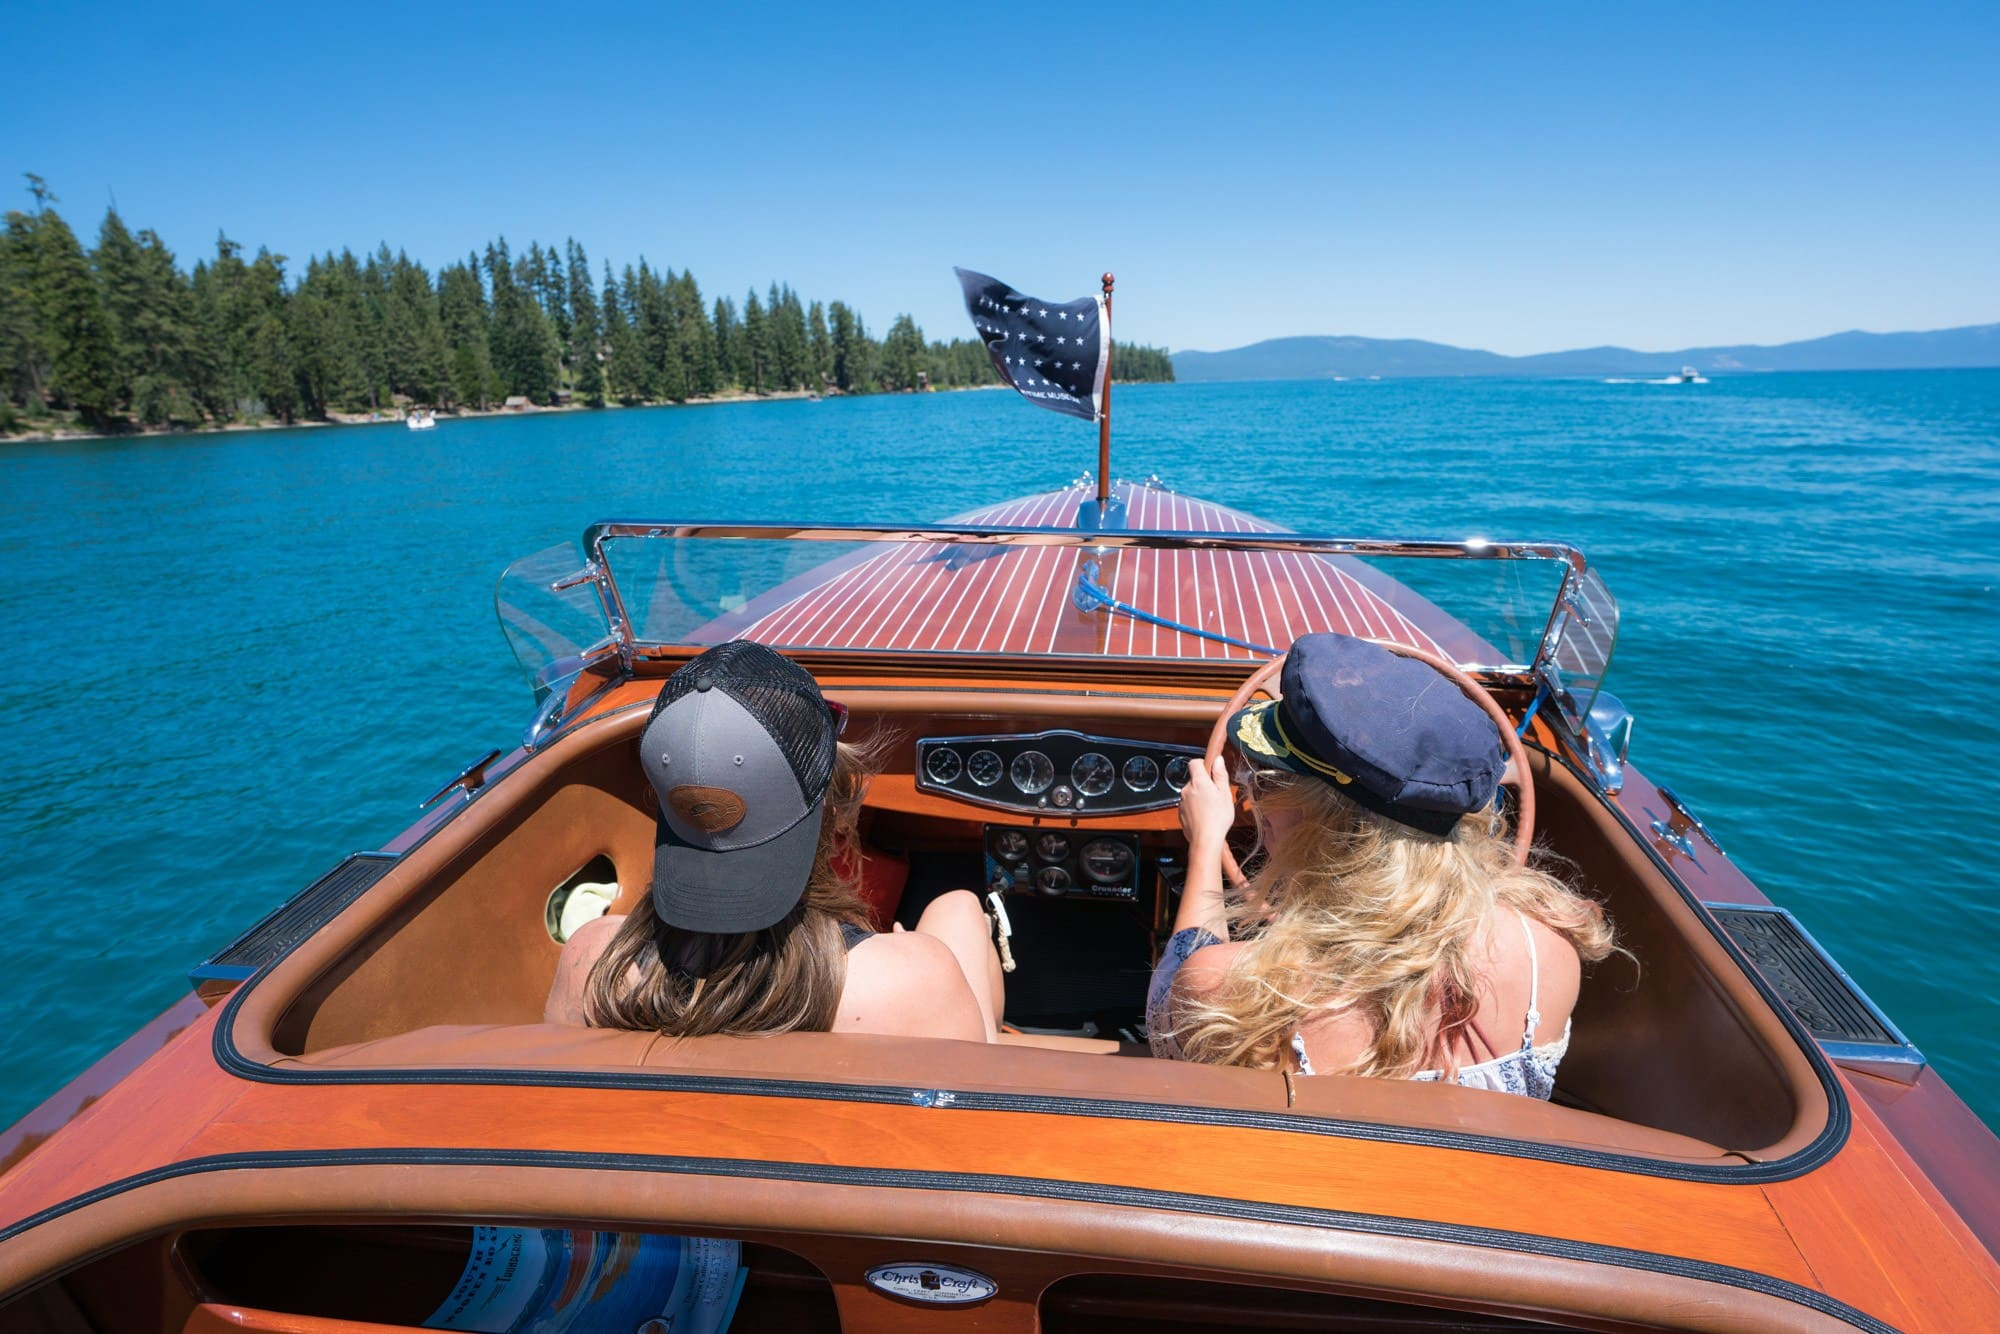 Cruise Lake Tahoe in a Woody // Planning an adventure-packed vacation to Lake Tahoe? Here are 12 of the best things to do around Lake Tahoe for the outdoor enthusiast.